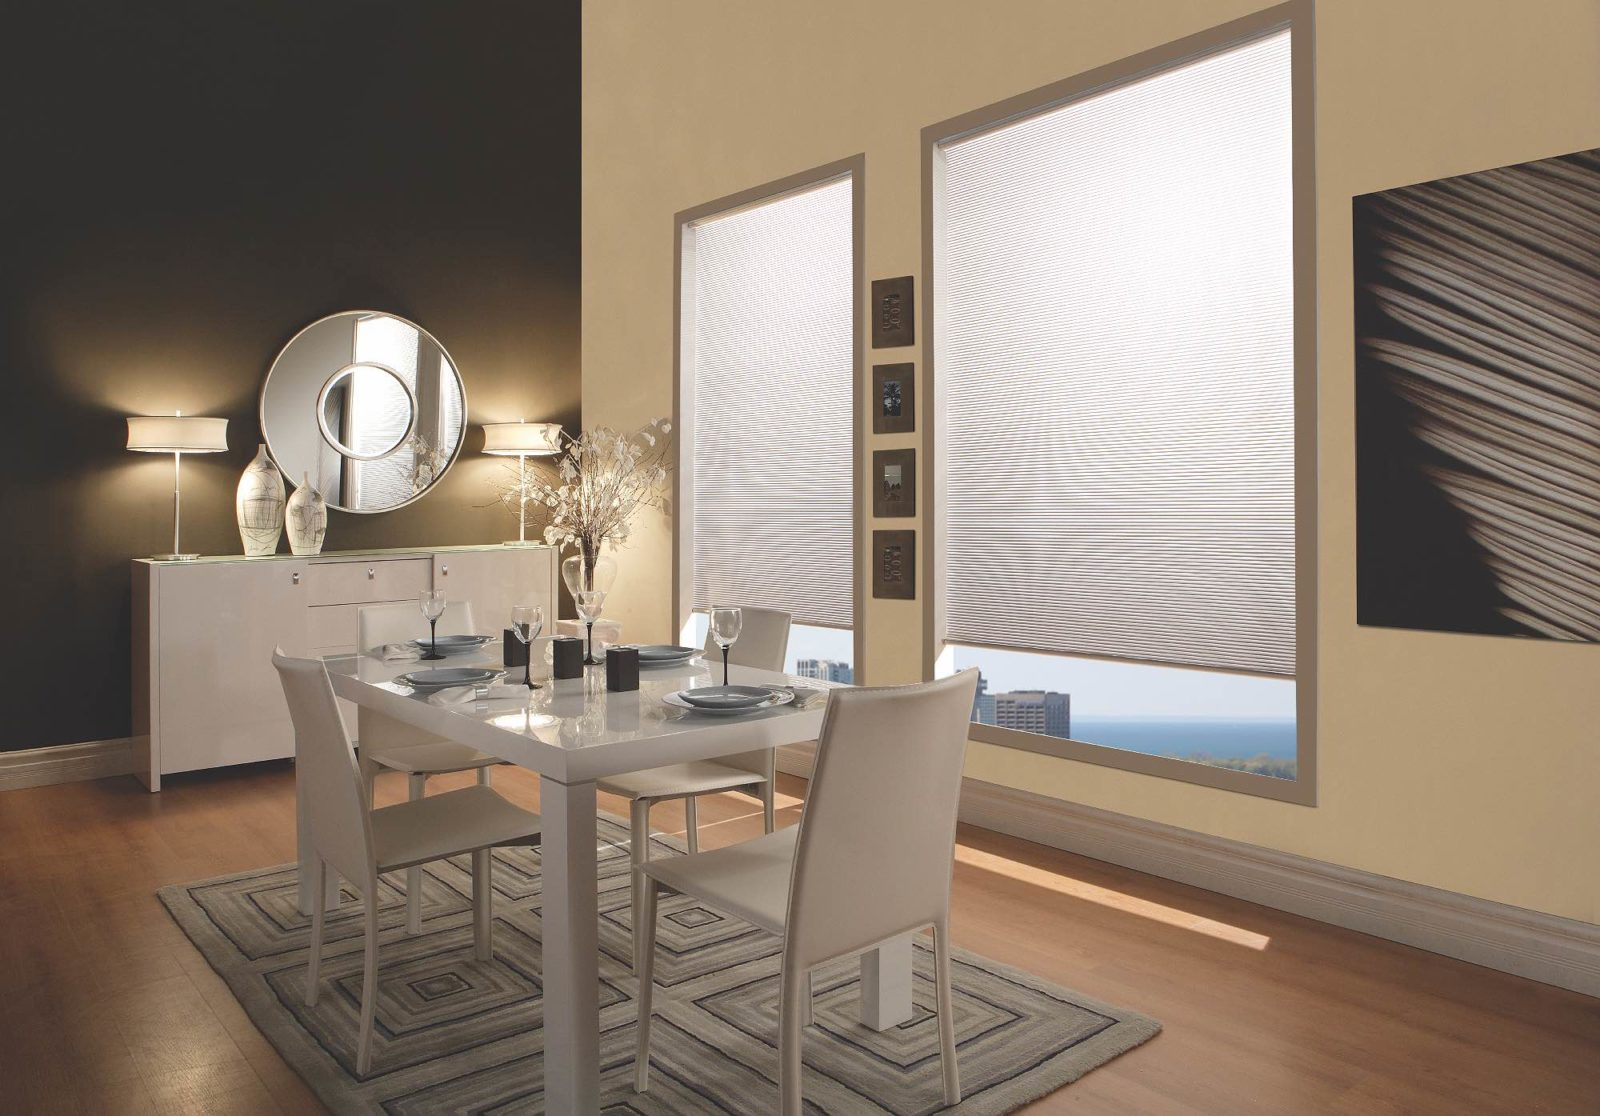 Blackout curtains, shades, blinds, and window treatements from ShadesatBlue.com in Collingwood